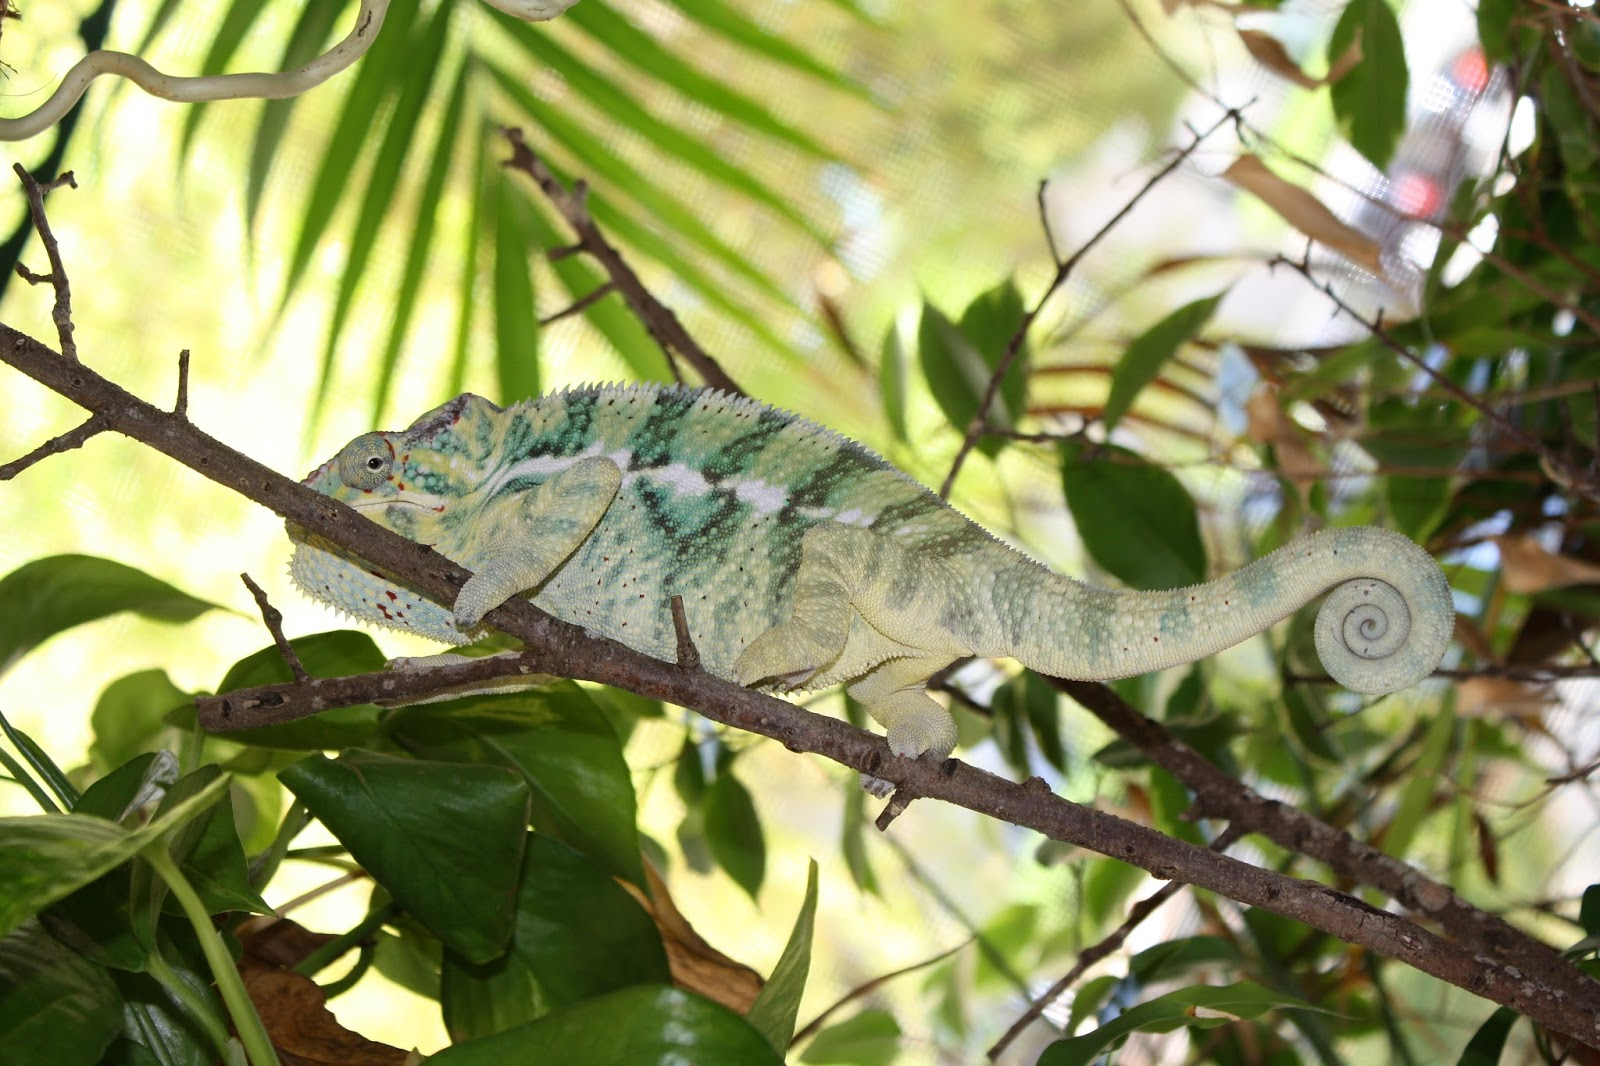 25 amazing chameleon pictures - If You Saw Last Week S Blog Post You Might Be A Slightly Horrified Right Now A Little Like When We Watch Monsters Inside Me And Vow To Never Eat Anything